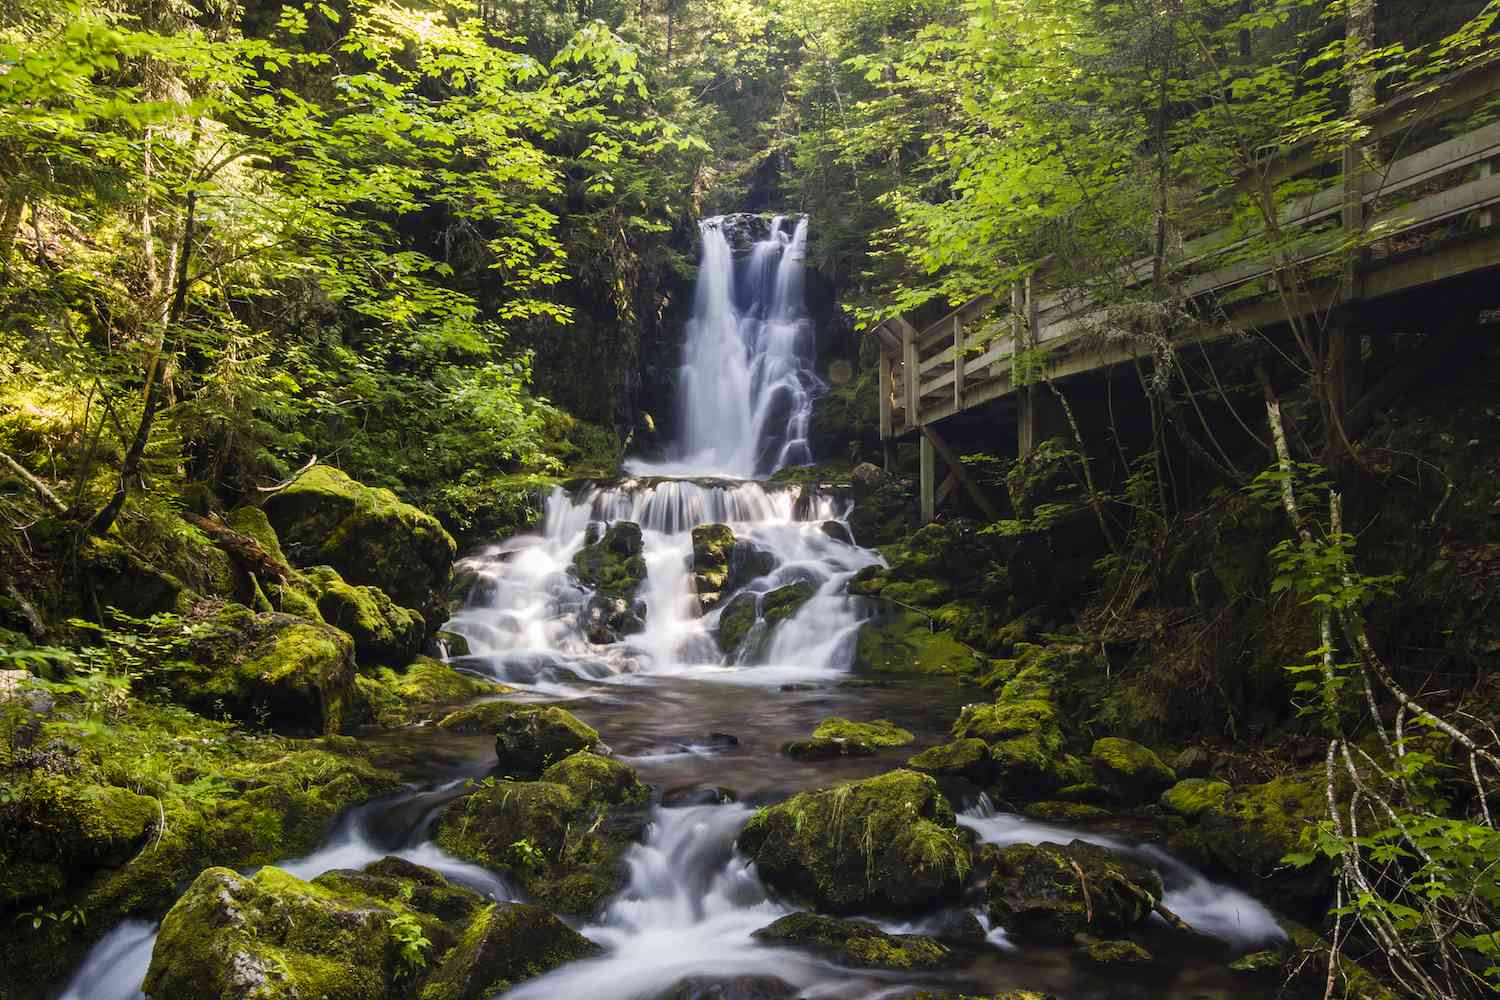 A waterfall flows among a green forest in Fundy National Park